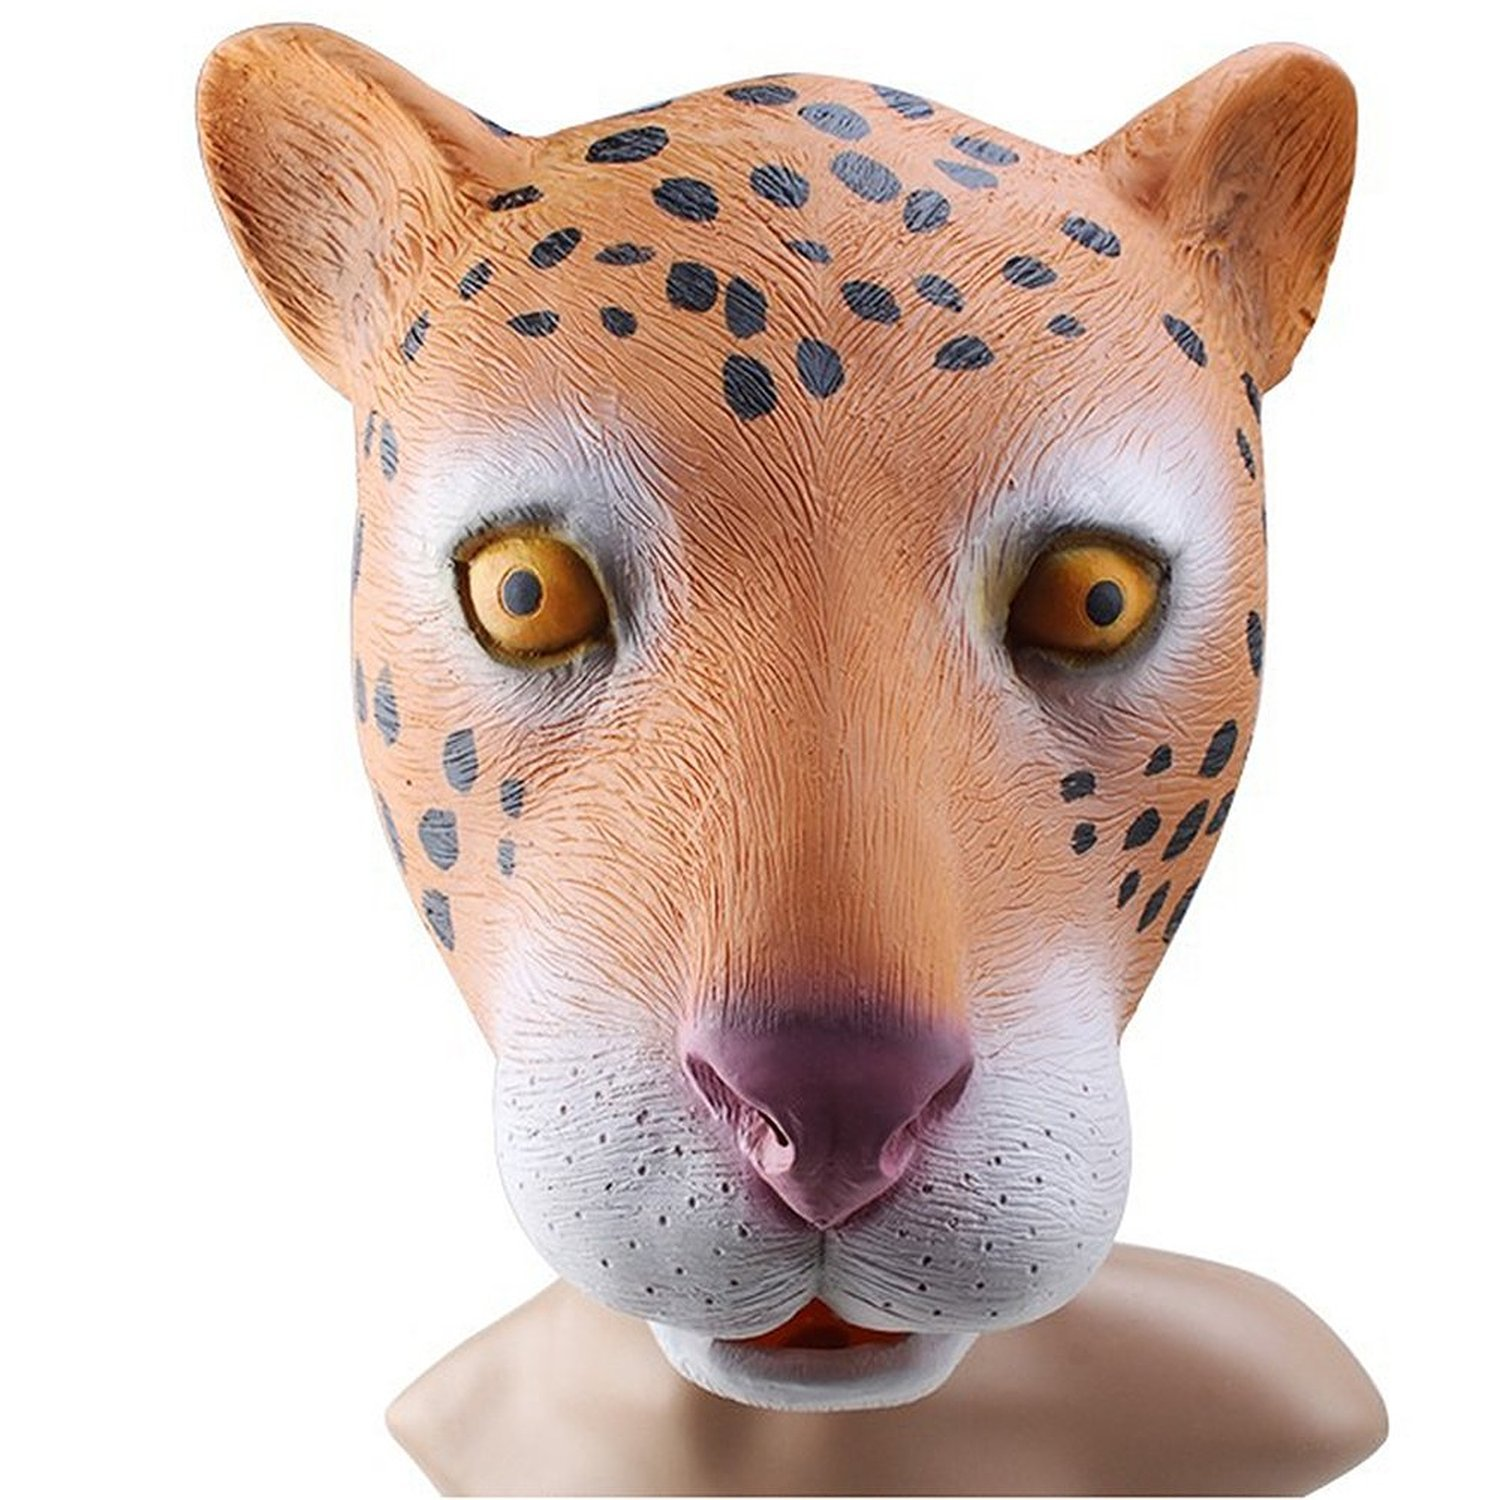 Hot Creepy leopard Mask Head for Halloween Party Decorations Costume Novelty Latex Rubber orange